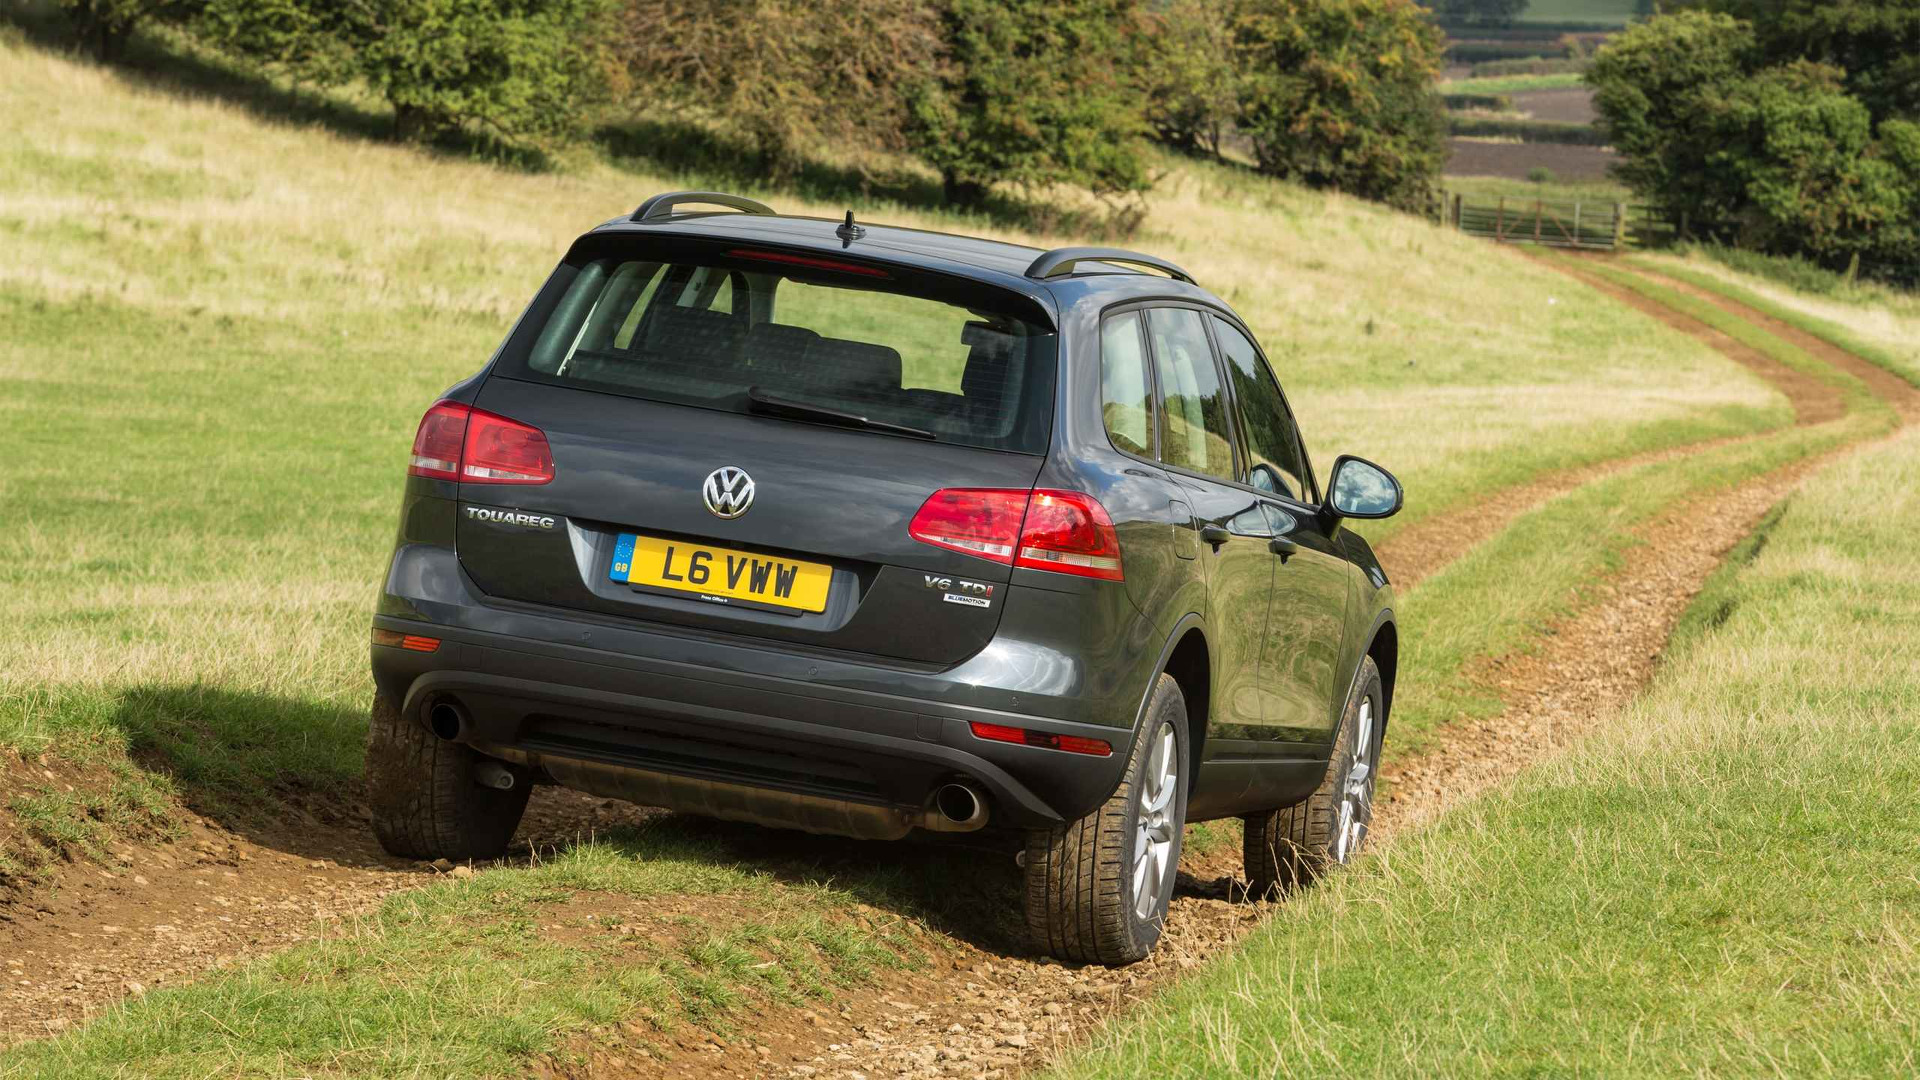 2010 Volkswagen Touareg Review Likeable But Outdated